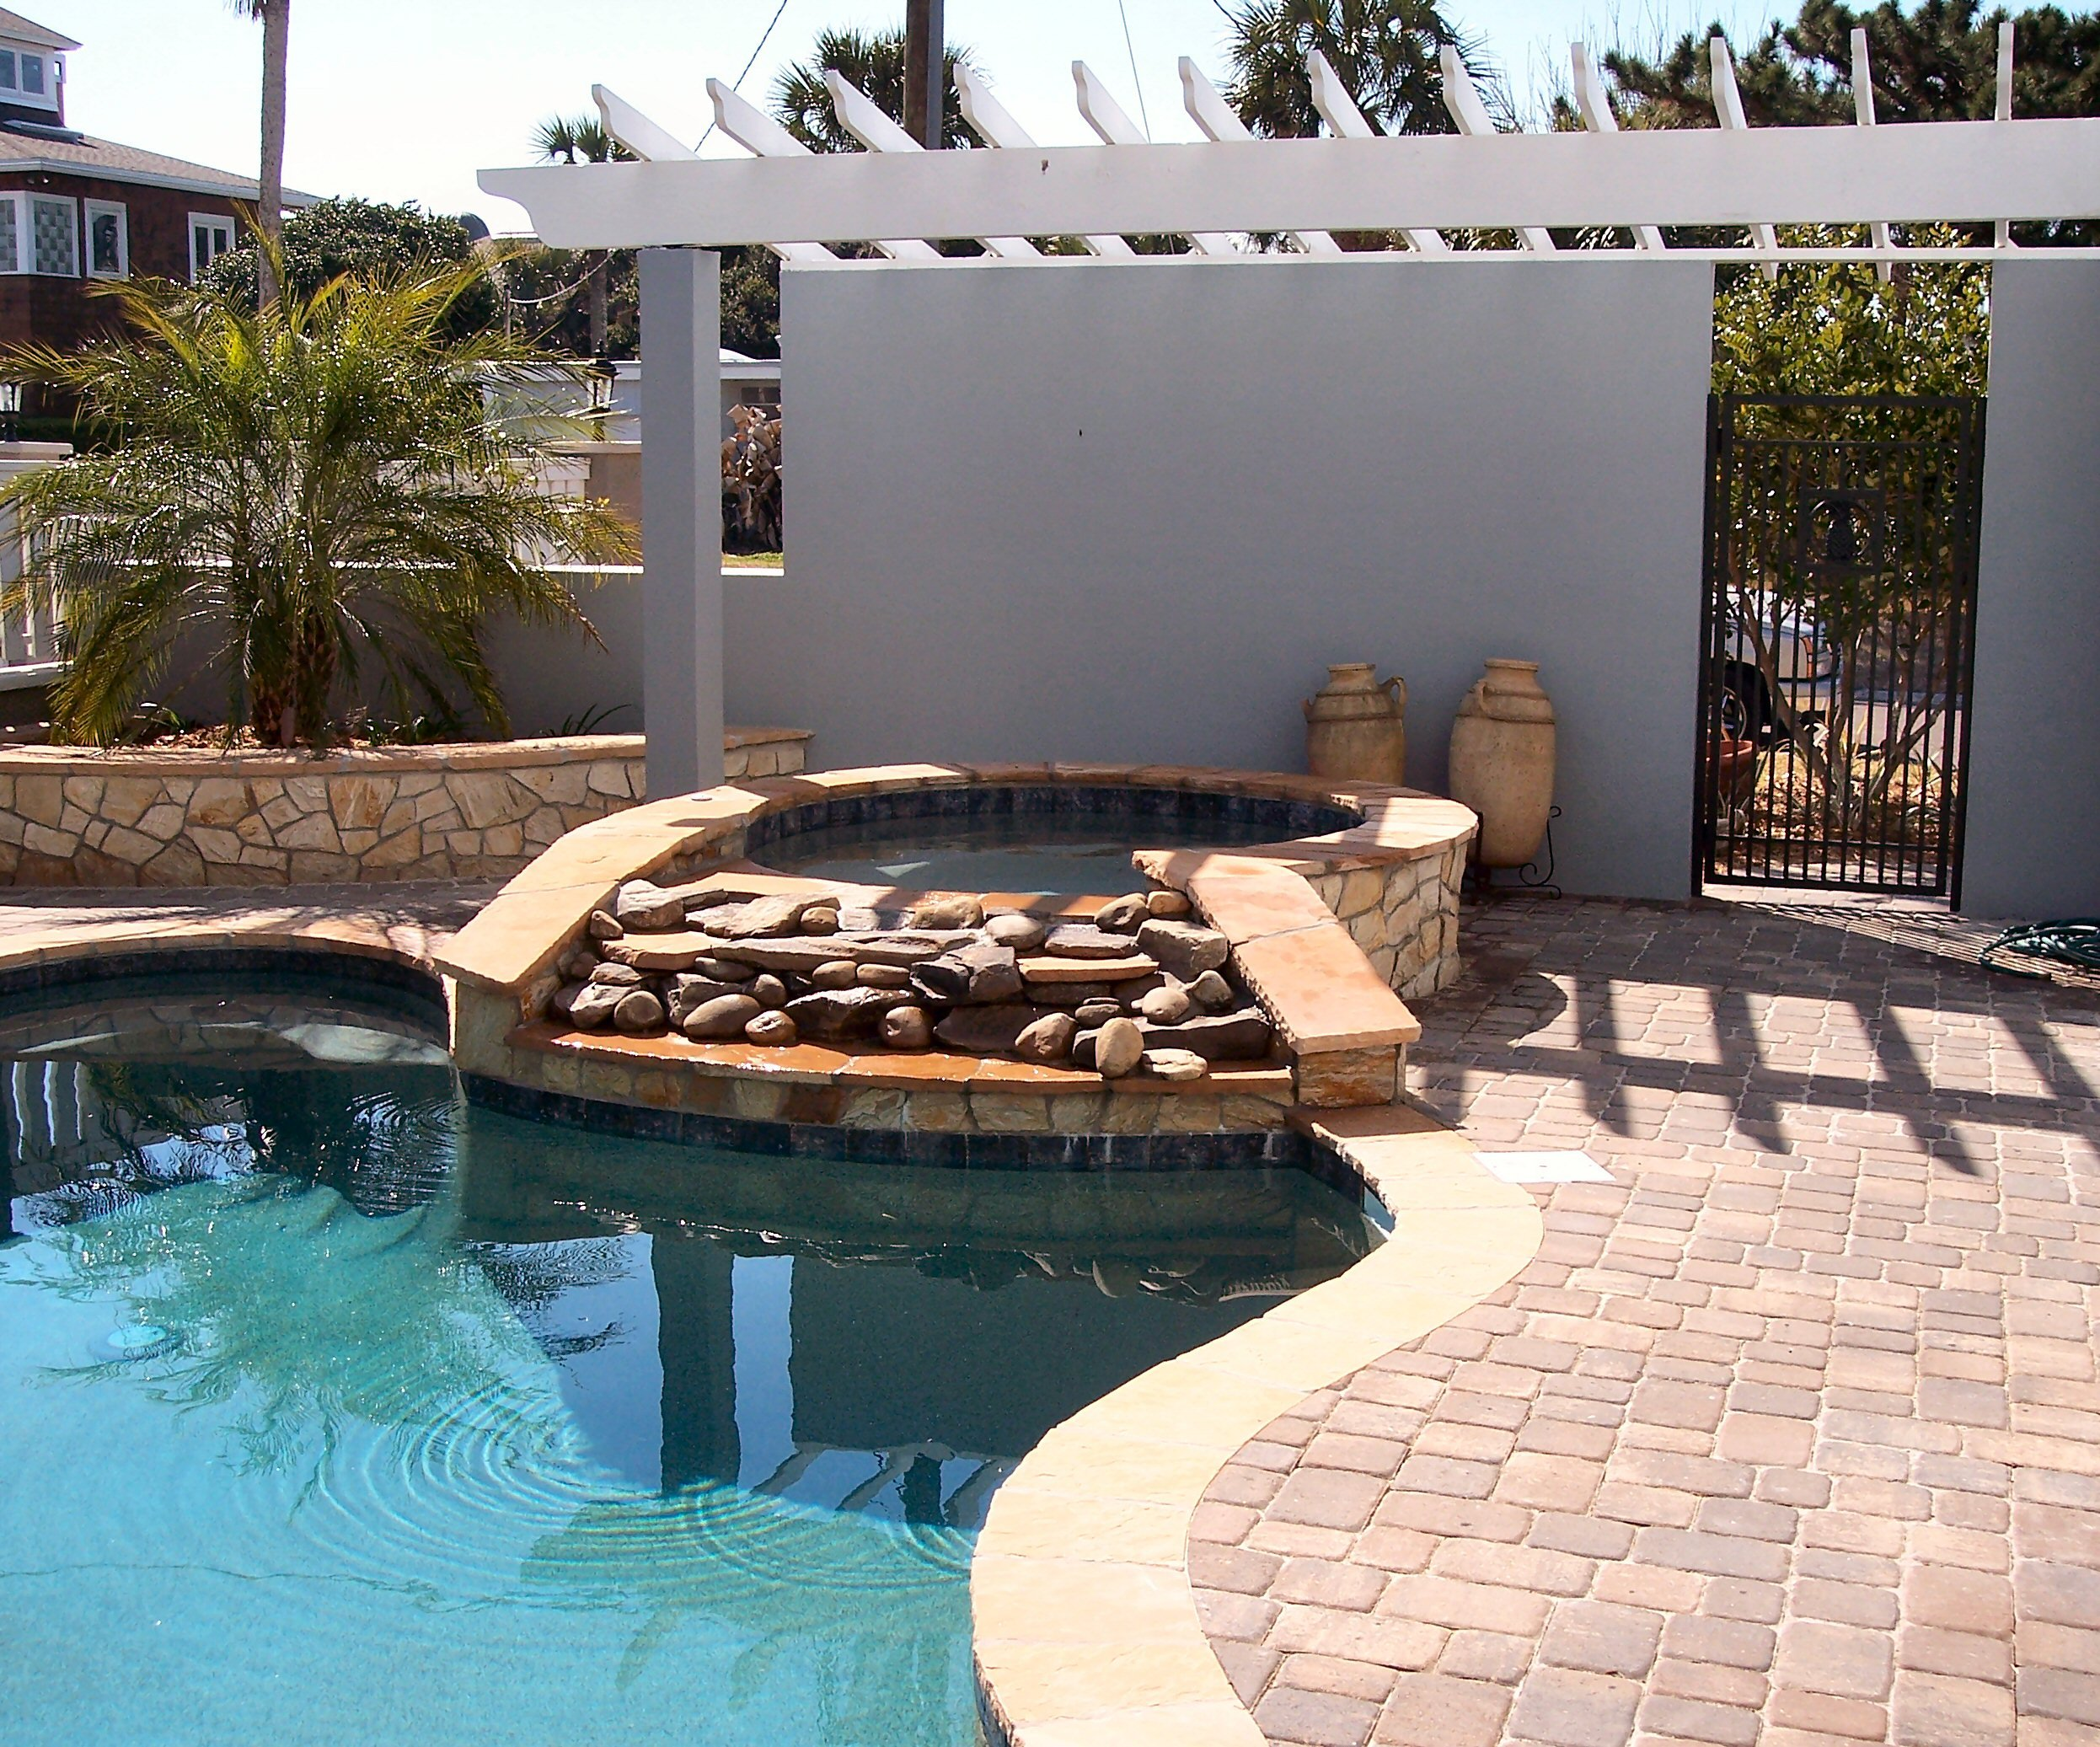 Outdoor Kitchens Fire Pits & Paver Pool Decks